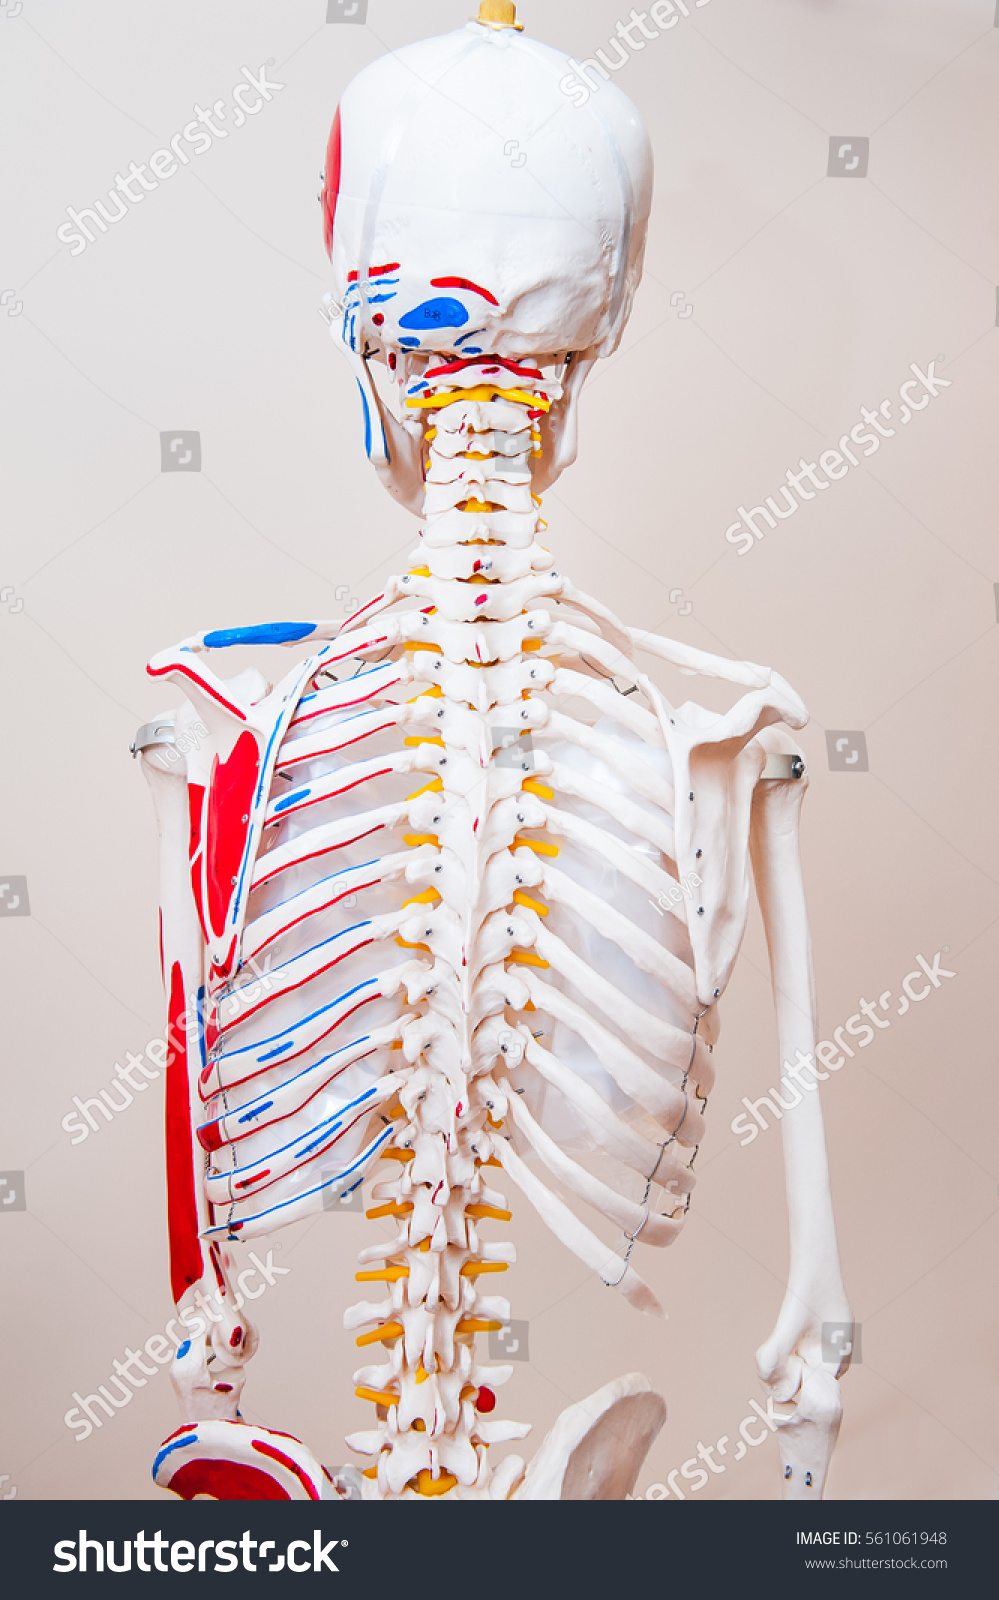 Colorful Human Anatomy Thorax Photo Human Anatomy Images